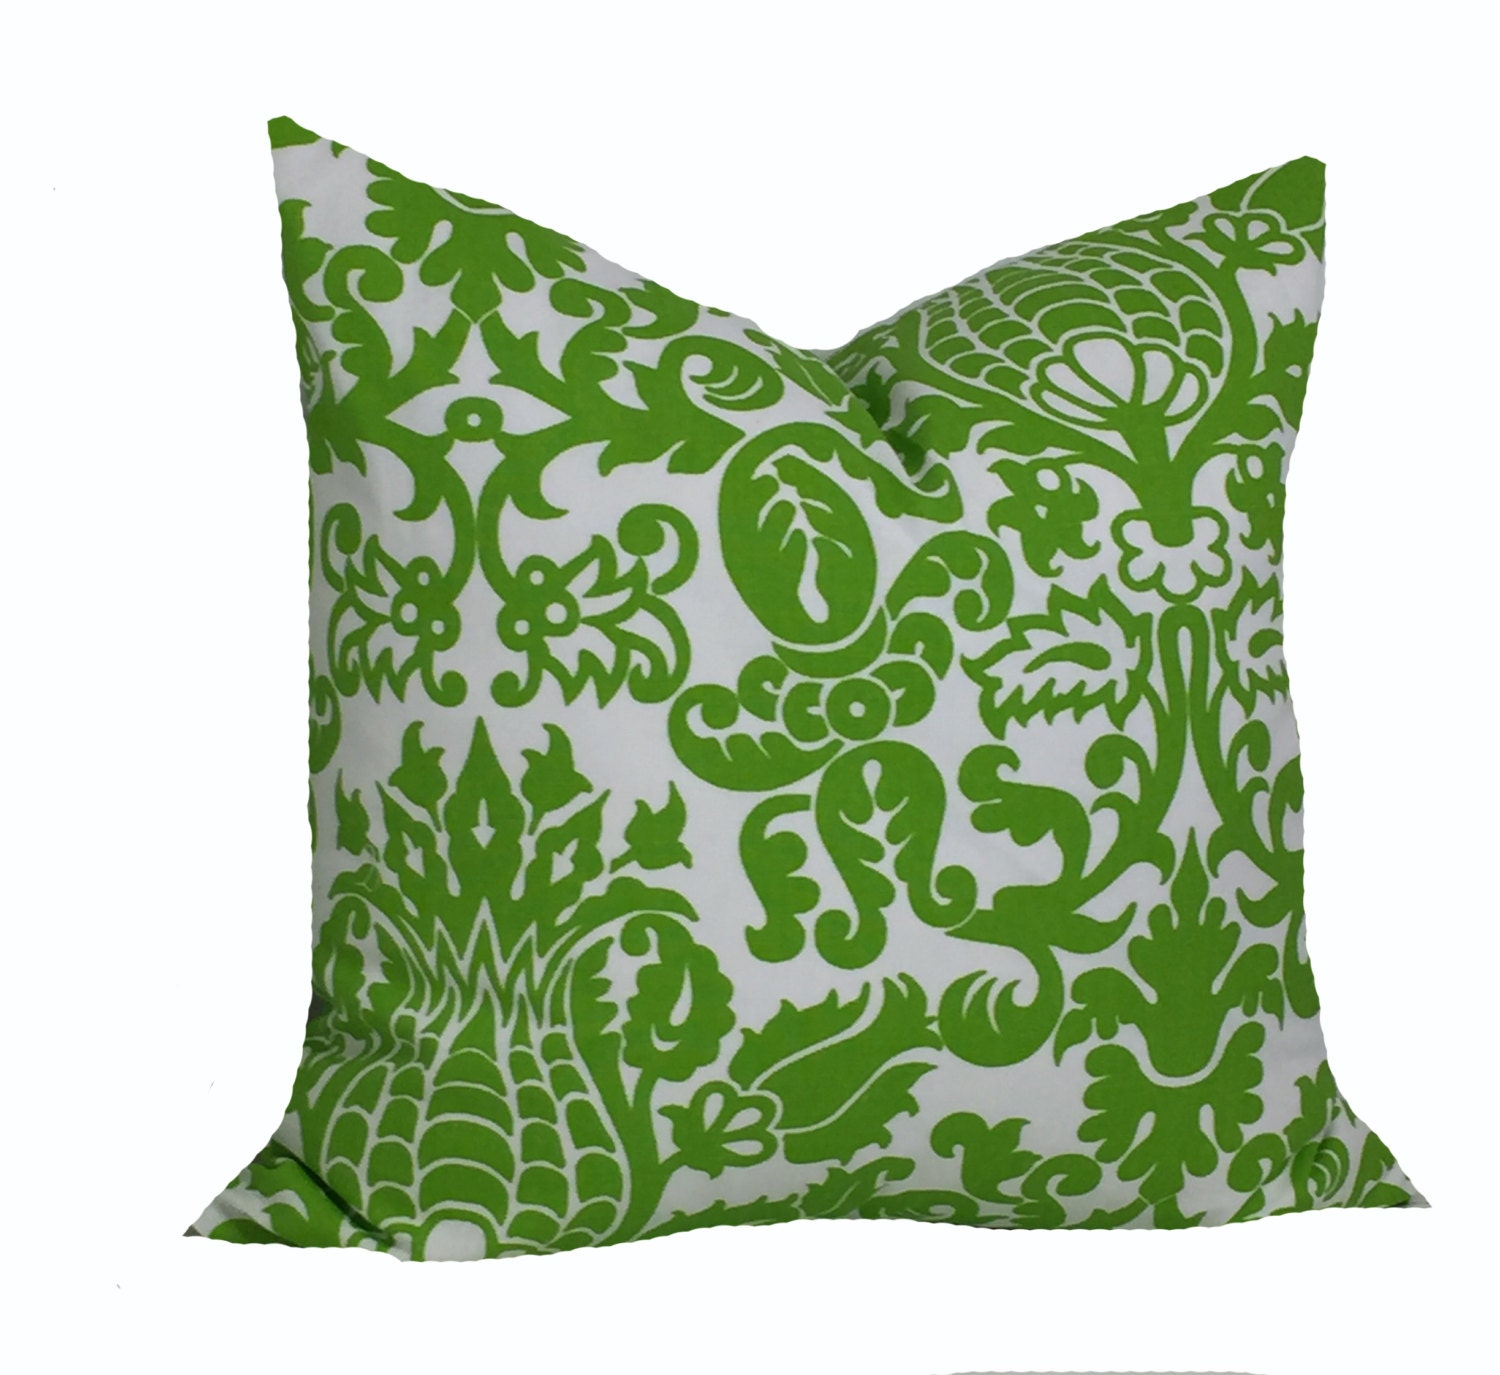 Throw Pillow Euro Sham : Decorative Pillow Cover Euro Sham by iDecorateWithPillows